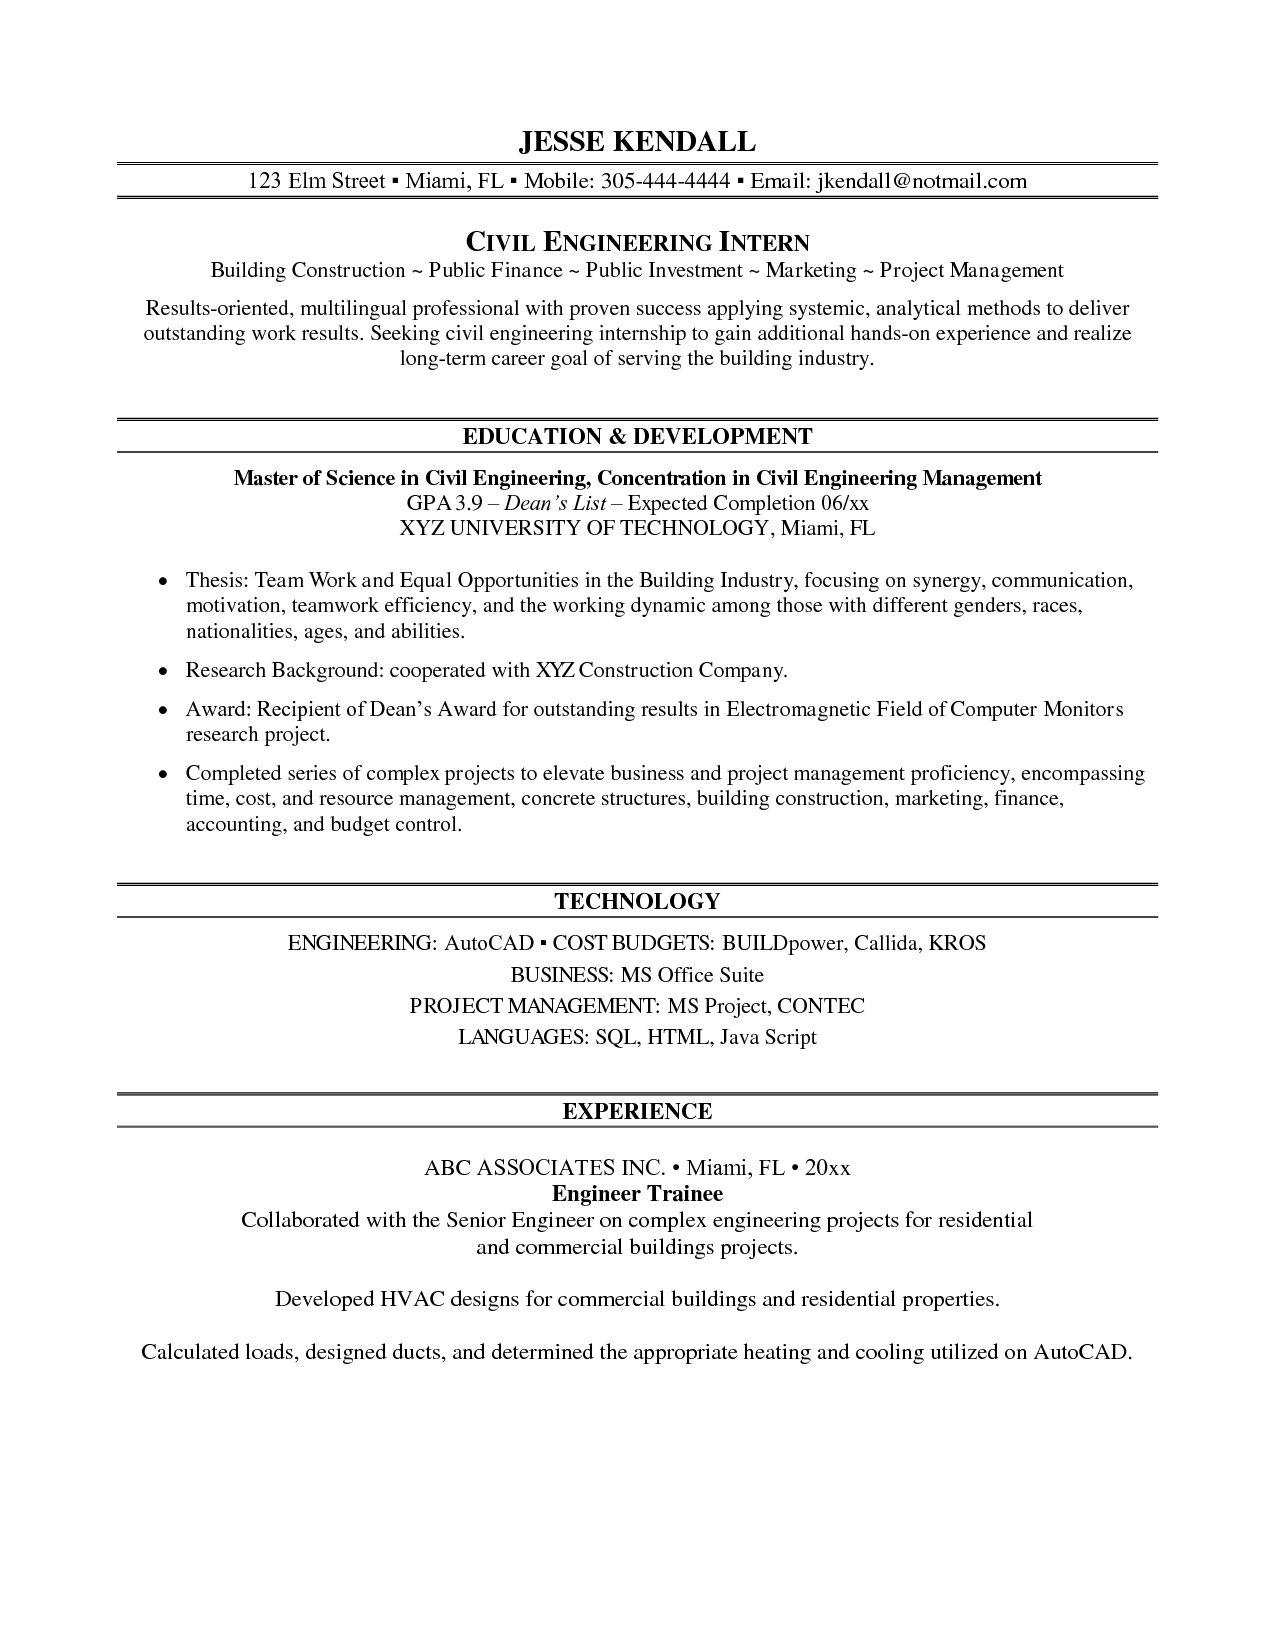 Internship On Resume Best Template Collection httpwwwjobresume